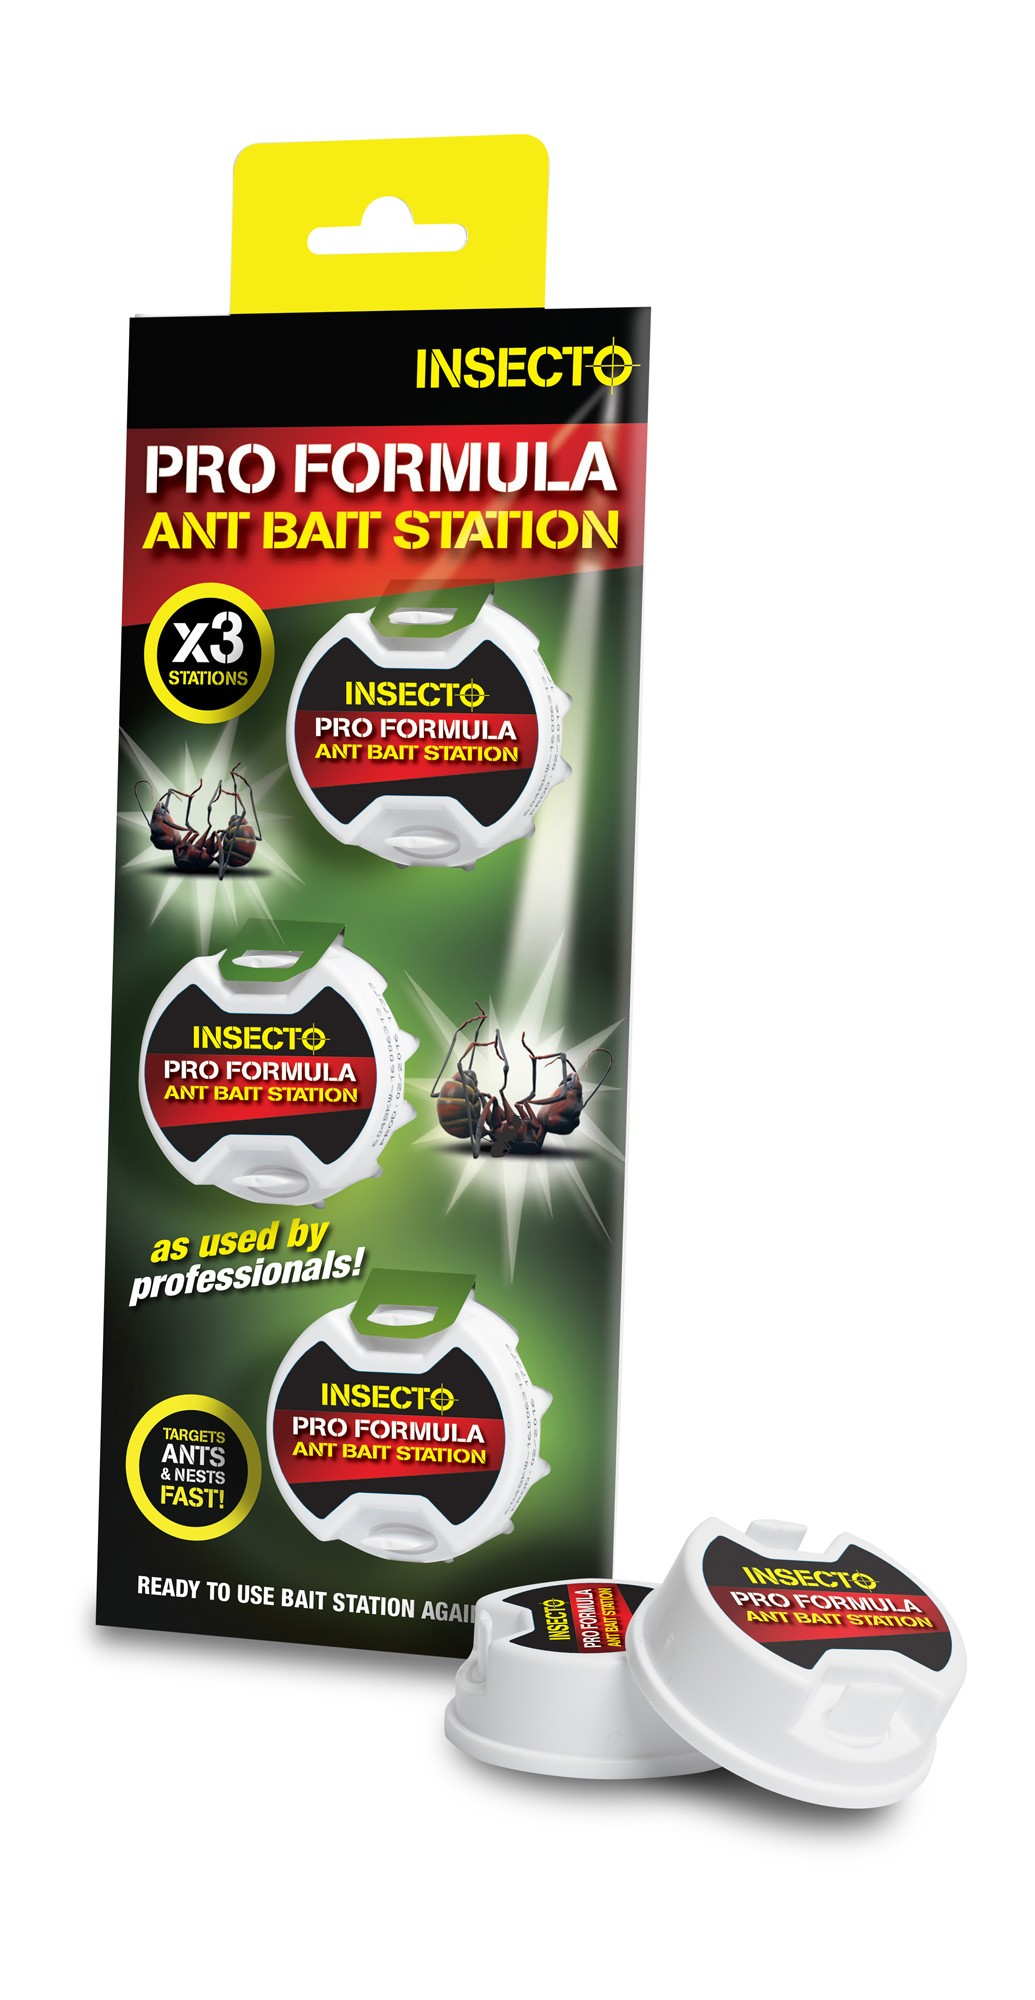 Insecto Ant Bait Stations